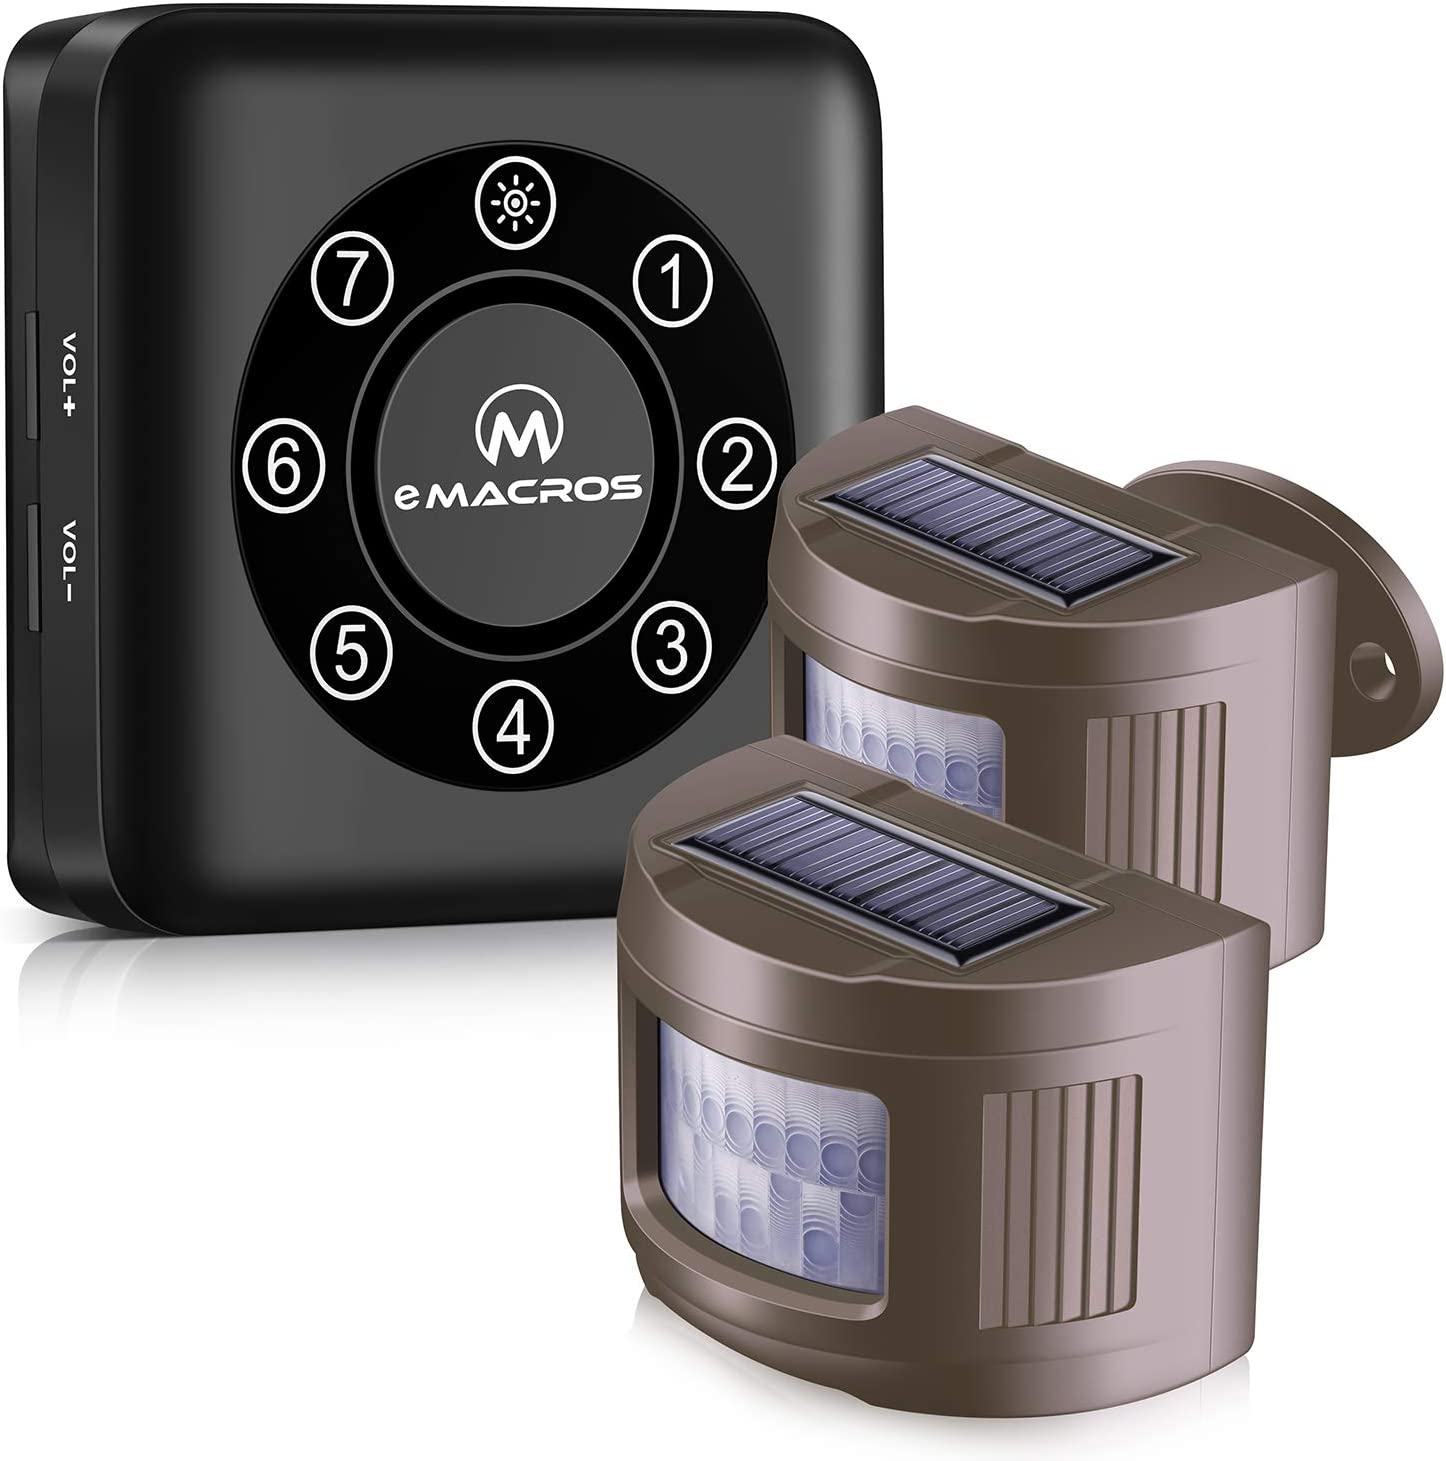 eMACROS Pairable 1/2 Mile Long Range Solar Wireless Driveway Alarm Indoor Outdoor Weatherproof Motion Sensor&Detector Security Alert System(2020 New Version)